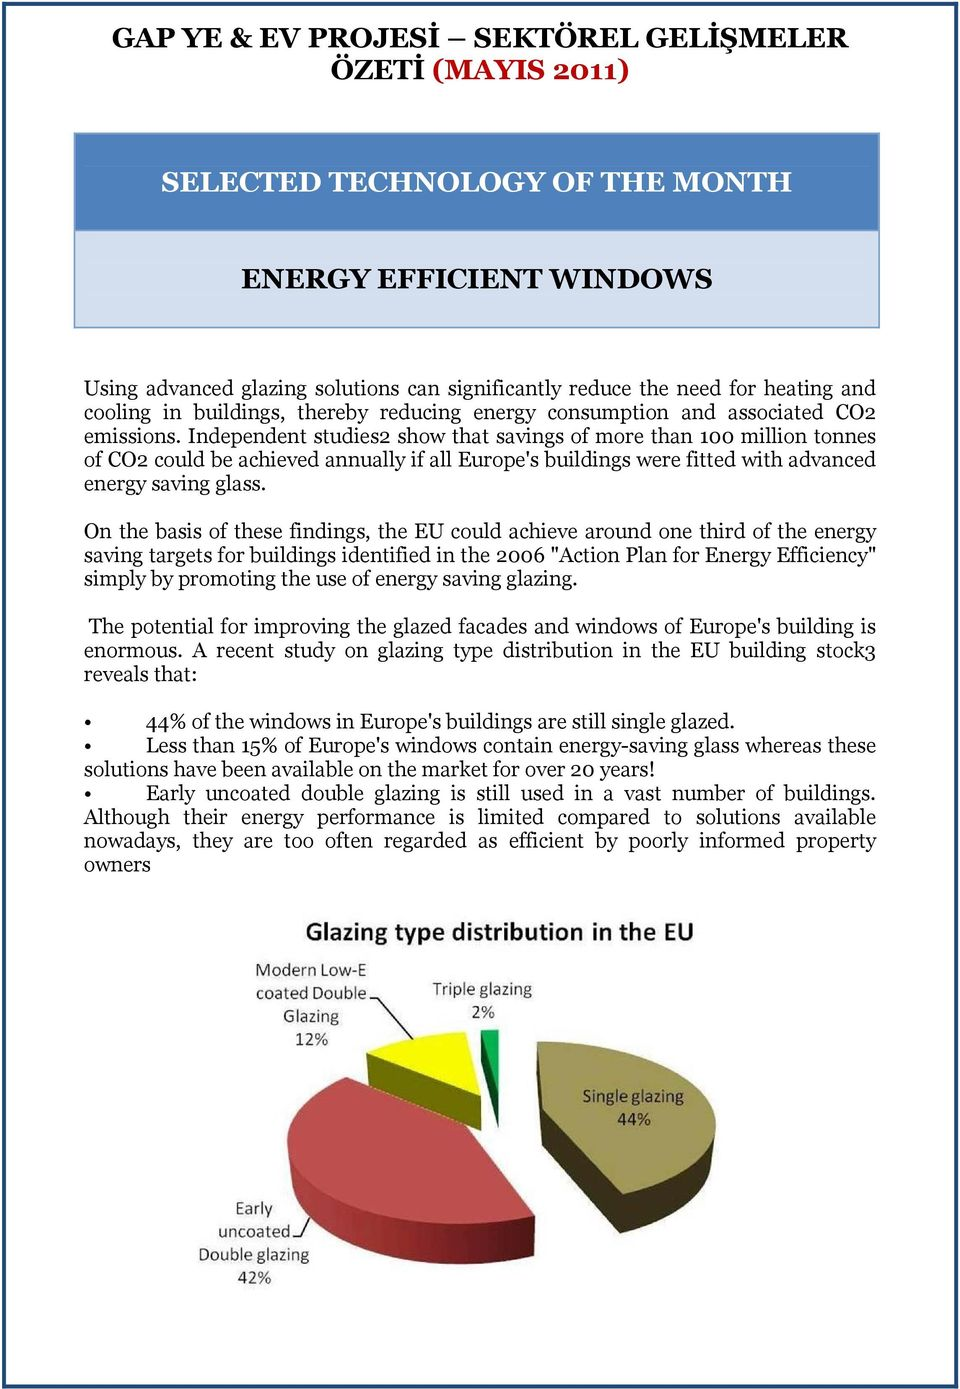 Independent studies2 show that savings of more than 100 million tonnes of CO2 could be achieved annually if all Europe's buildings were fitted with advanced energy saving glass.